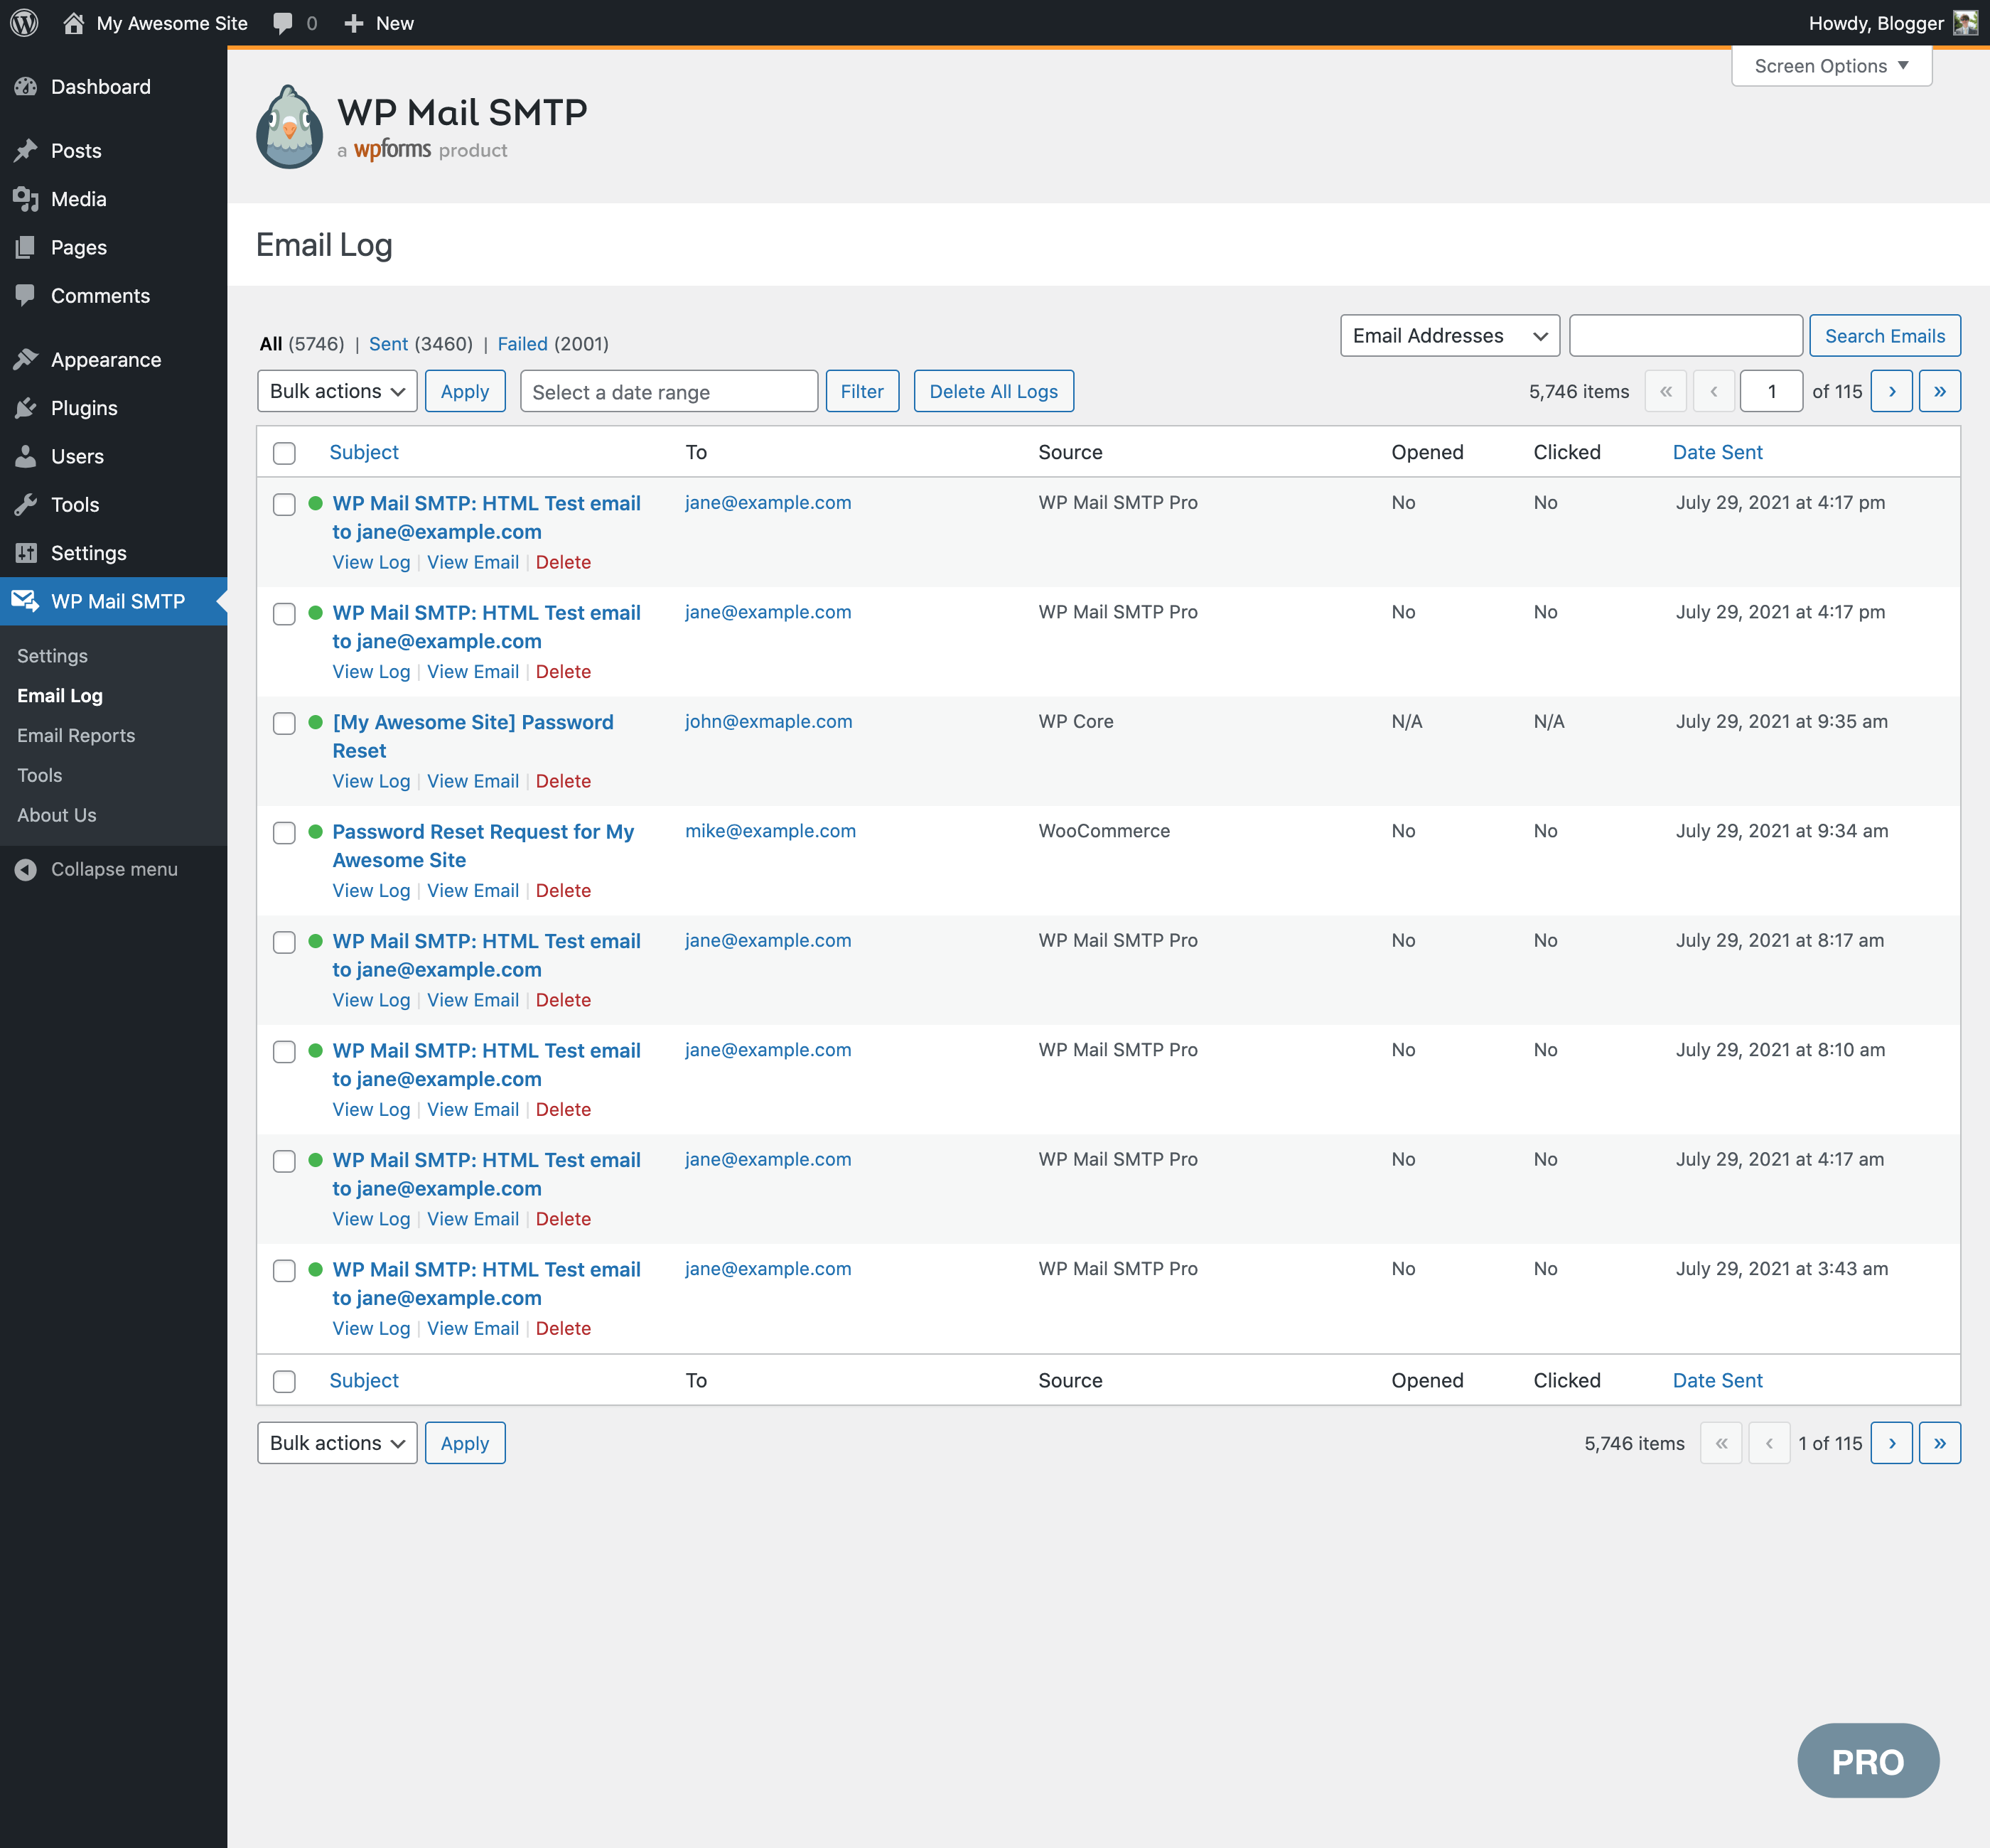 Email Log archive page (Pro)